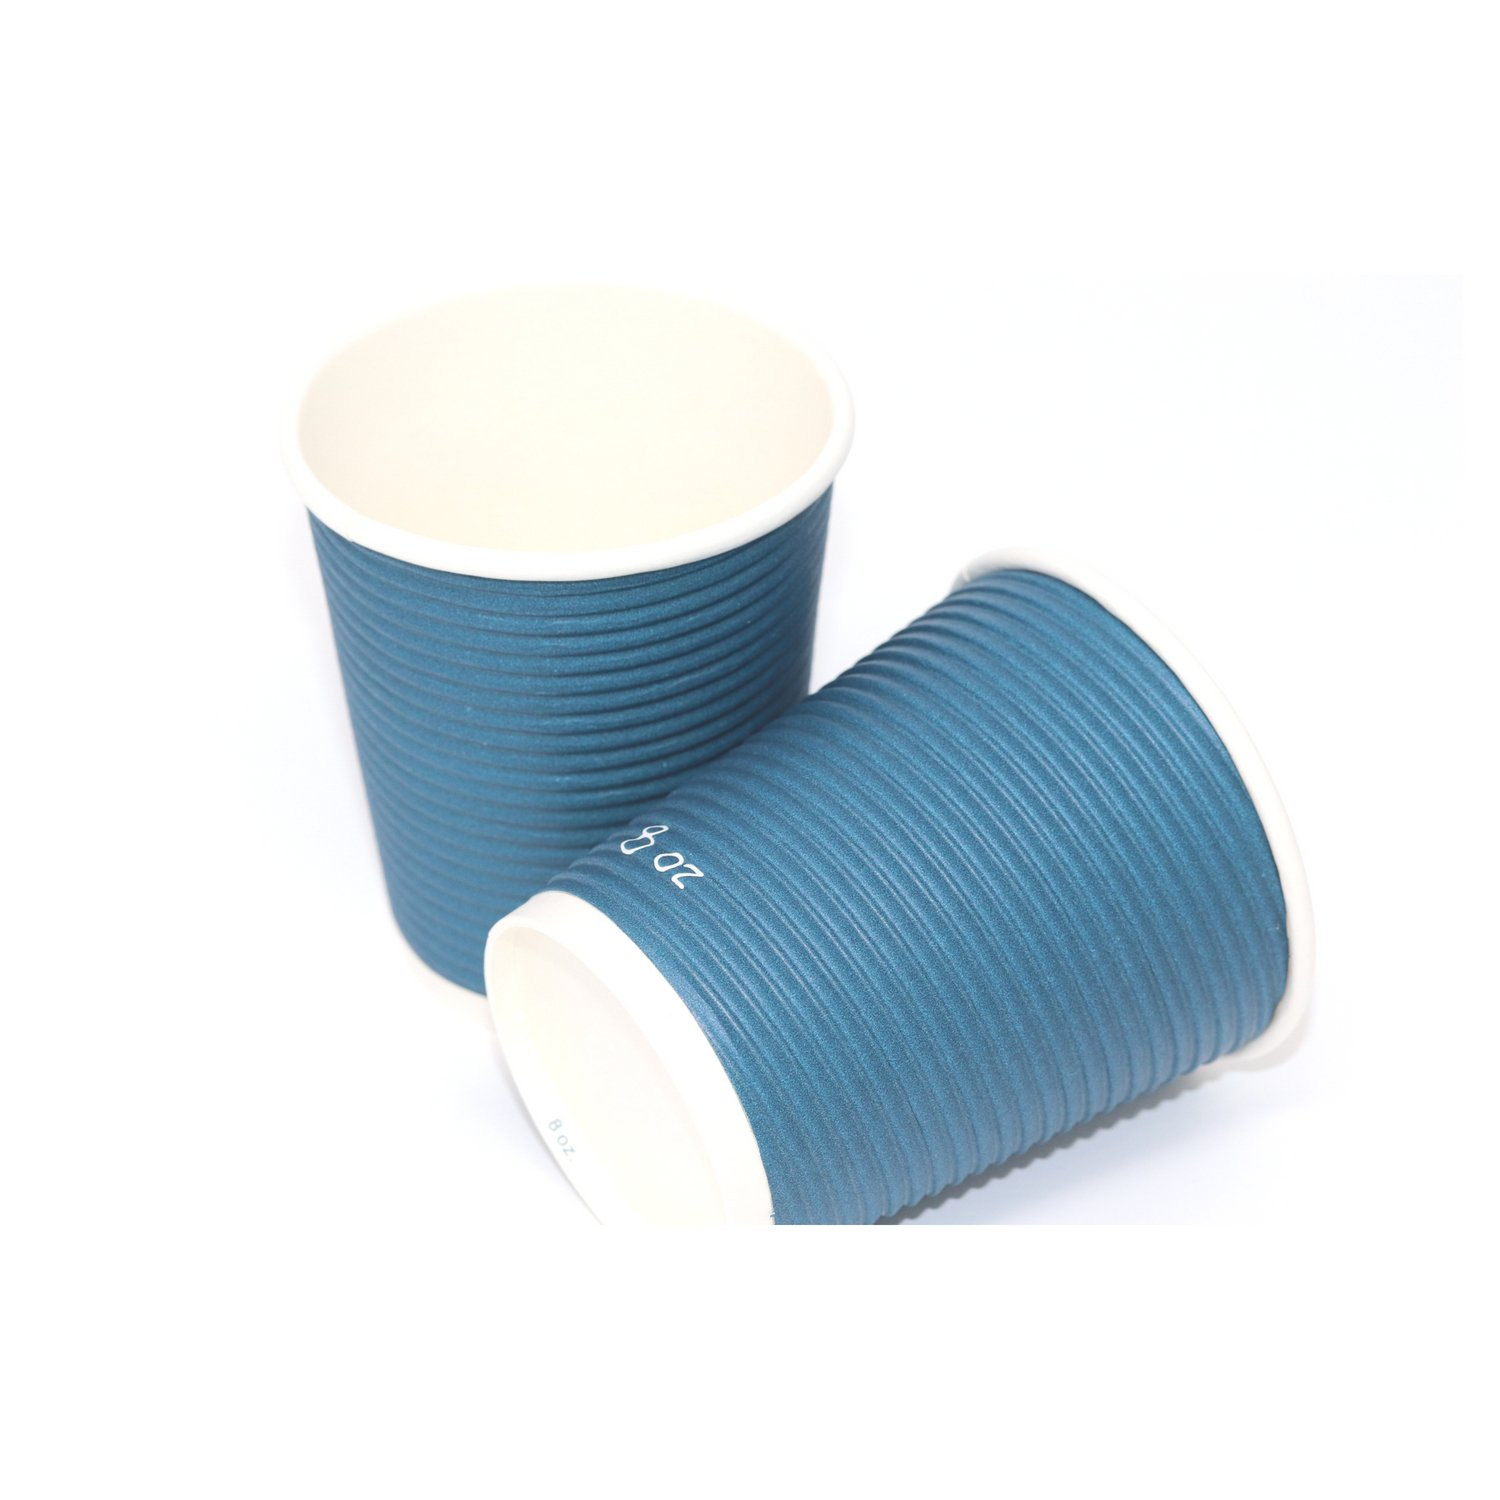 Disposable Insulated To Go Ripple Biodegradable Hot Coffee Cups with Lids [8 oz with Lid] by Berkley Square (Image #2)